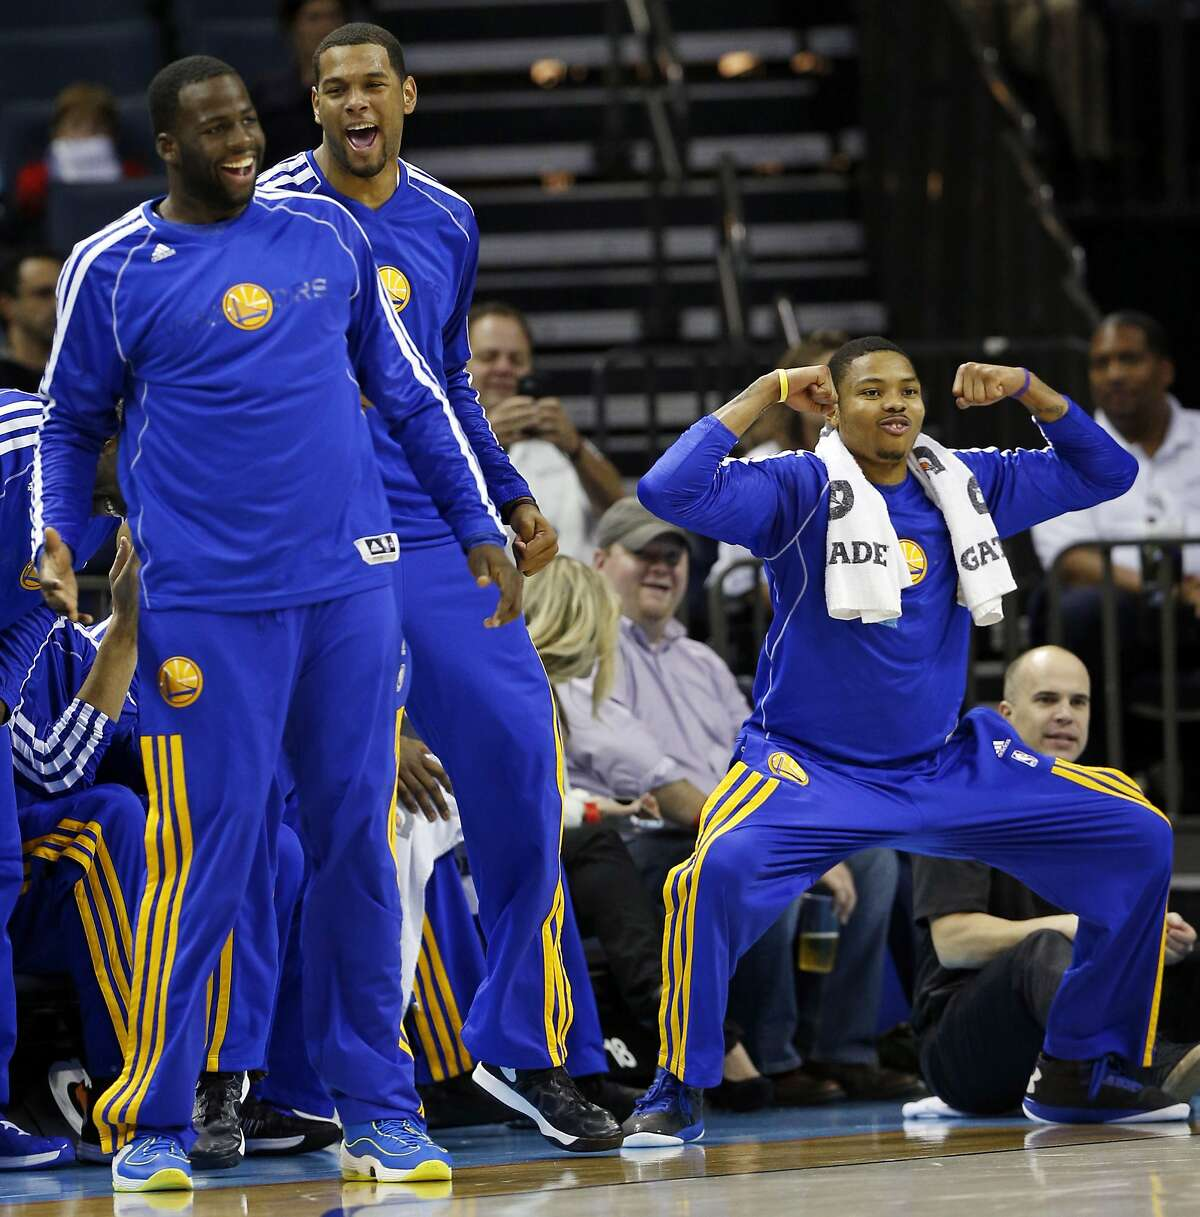 Golden State Warriors' Draymond Green, left, Jeremy Tyler, center, and Kent Bazemore react from the bench during the first half of an NBA basketball game against the Charlotte Bobcats in Charlotte, N.C., Monday, Dec. 10, 2012. (AP Photo/Chuck Burton)